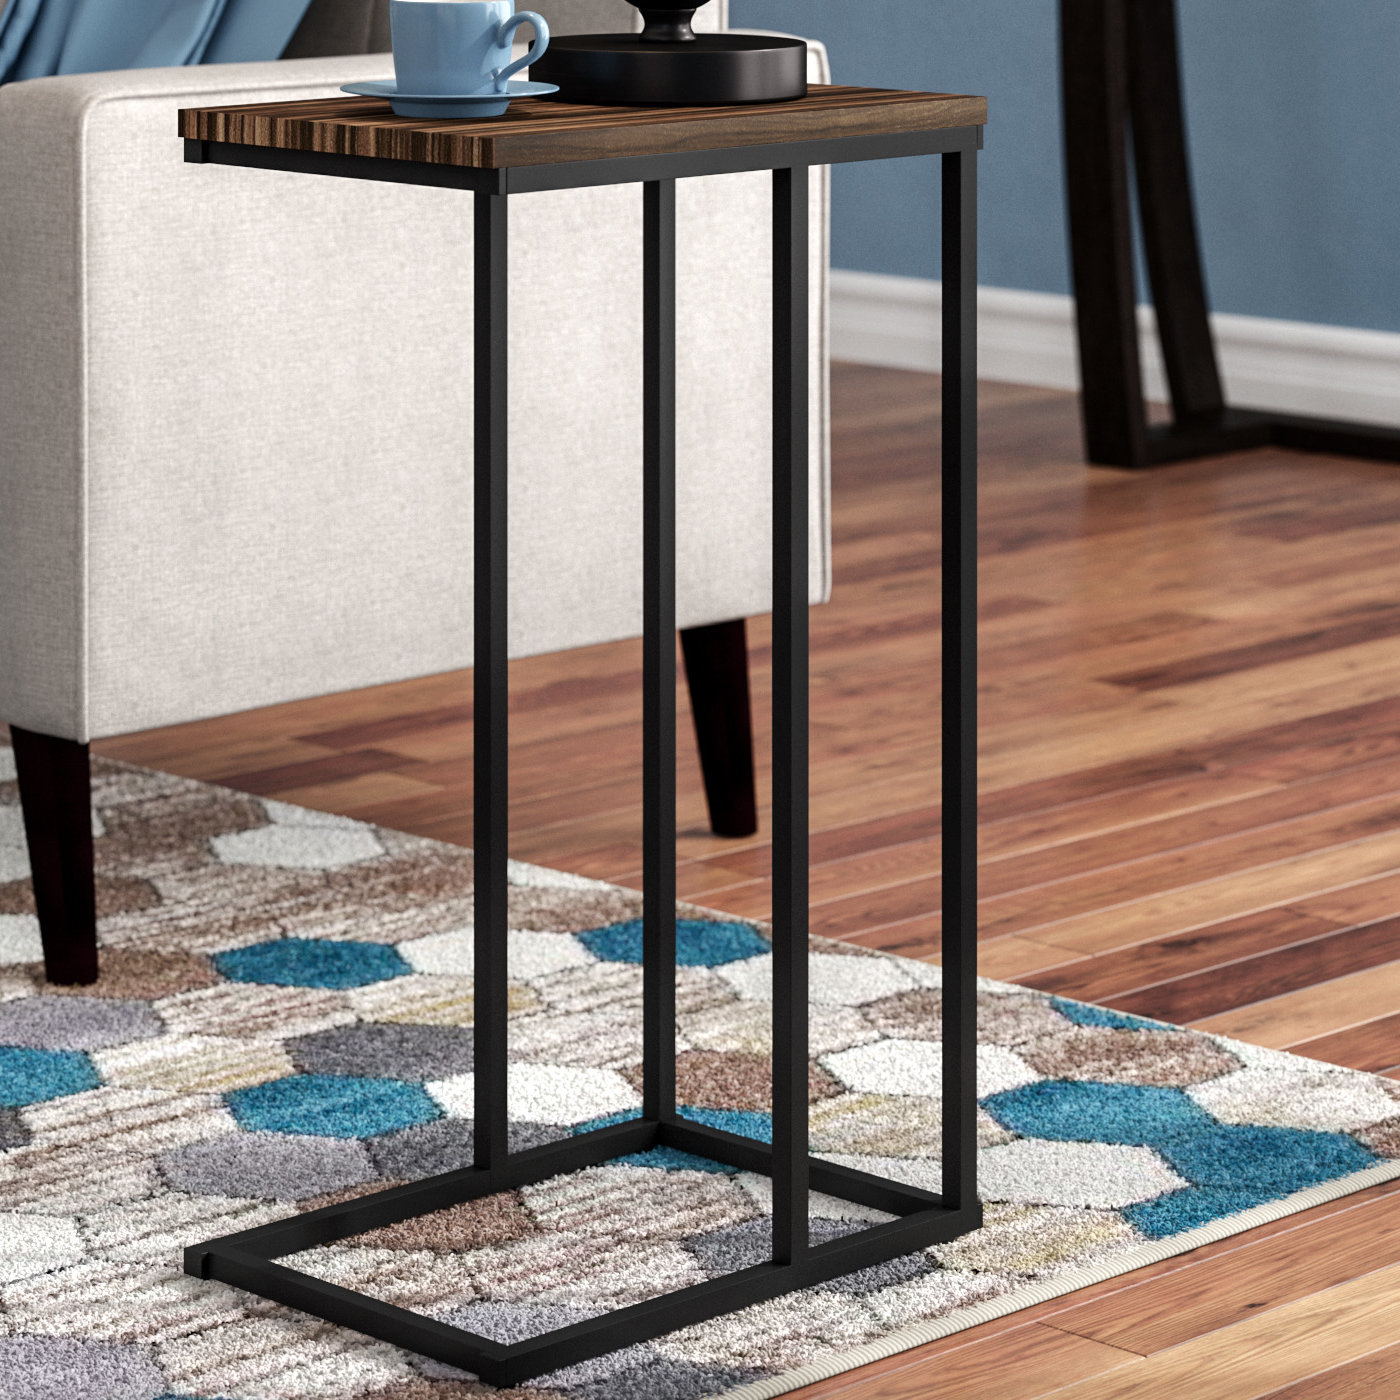 accent tables for small spaces andresen end table ifrane quickview carpet room divider strip winsome with drawer glass lamp shades hampton bay outdoor furniture wicker target